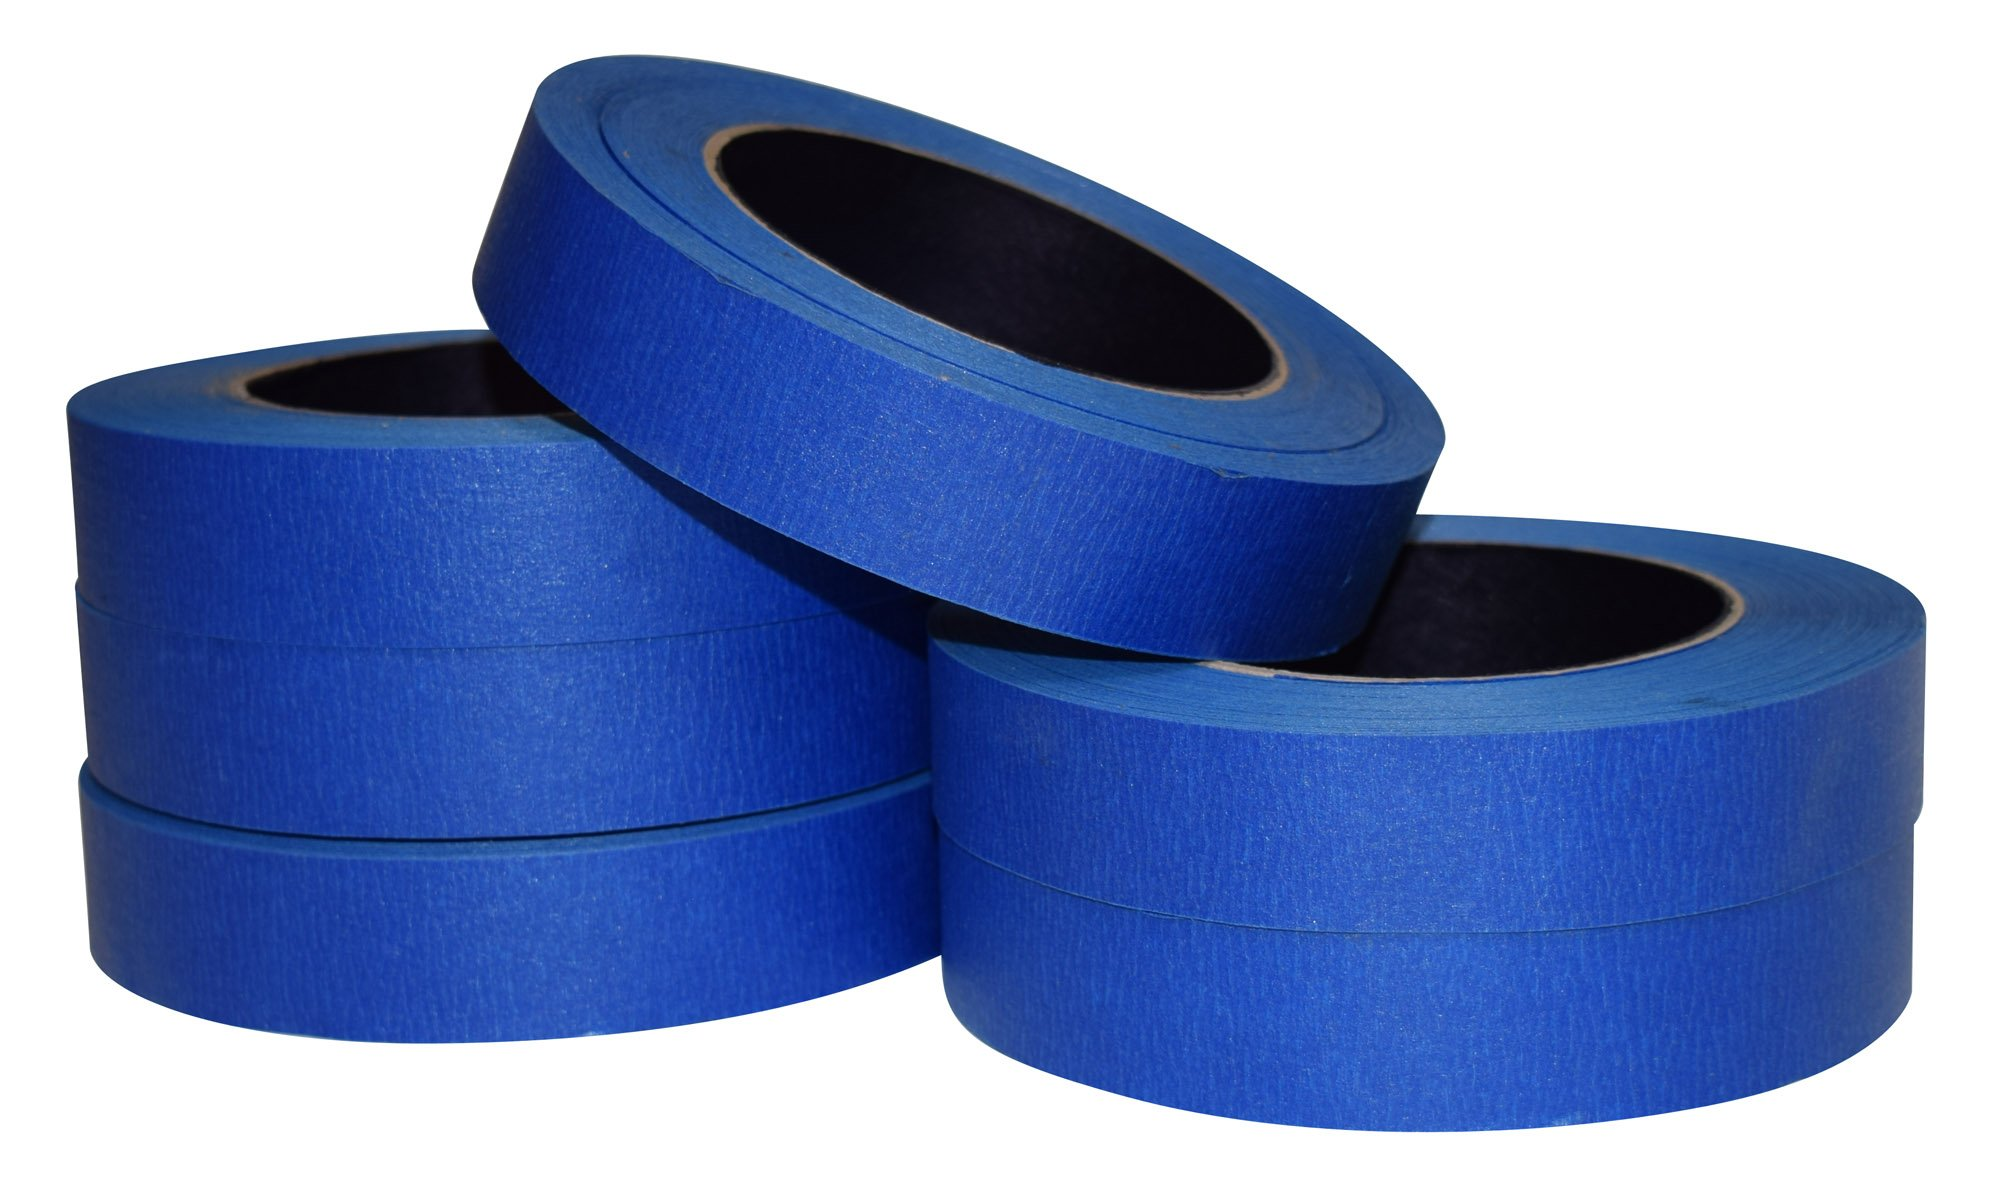 JAK Industrial Blue Painters Tape PROFESSIONAL Grade - CASE of 48 - 1'' x 60 Yards per roll. (24MM .94in) by JAK Industrial (Image #2)